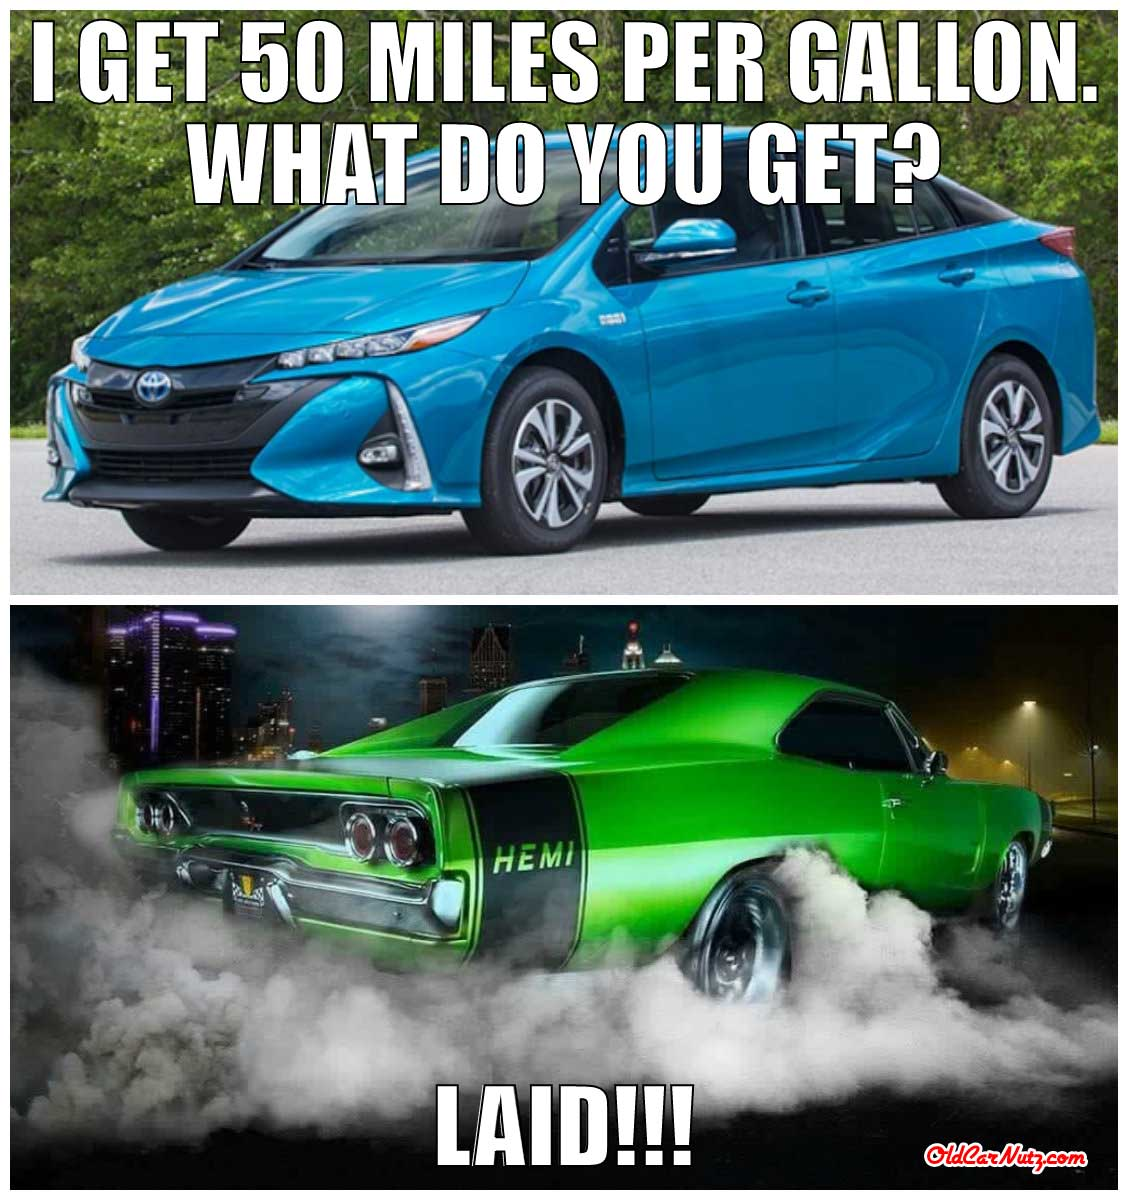 this car gets 50 miles per gallon  what do you get